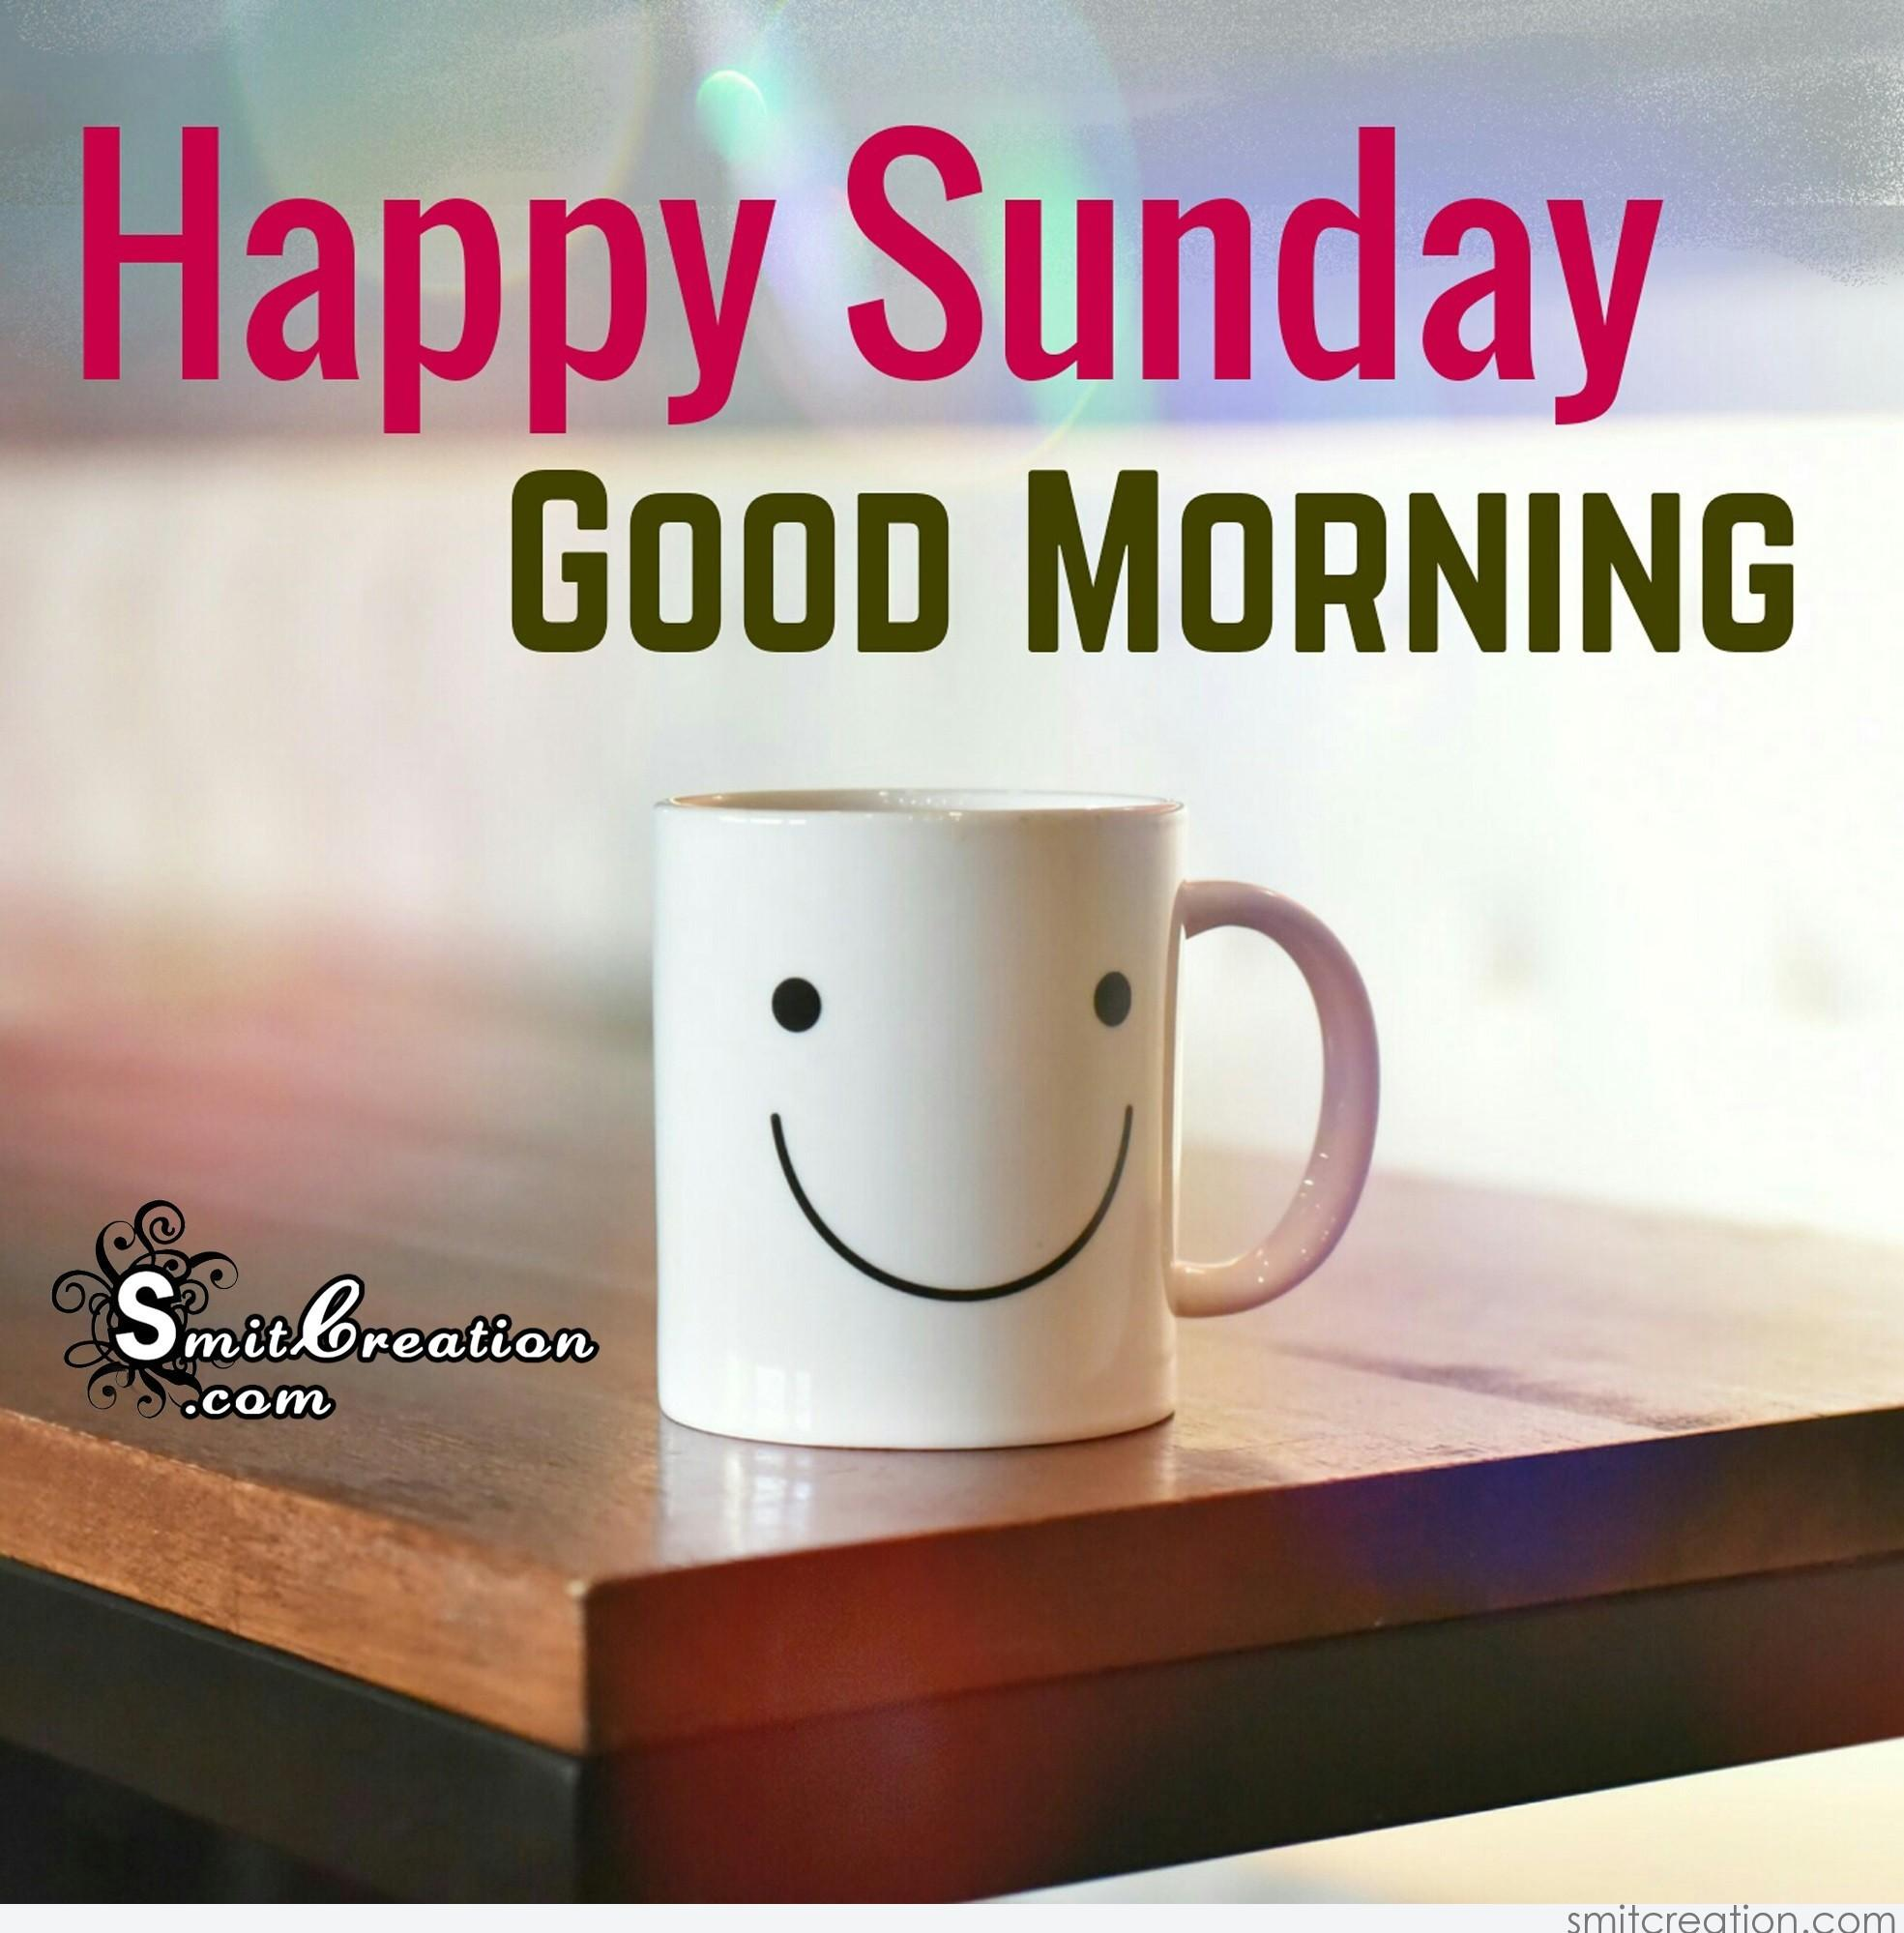 Happy Sunday Good Morning Smitcreationcom